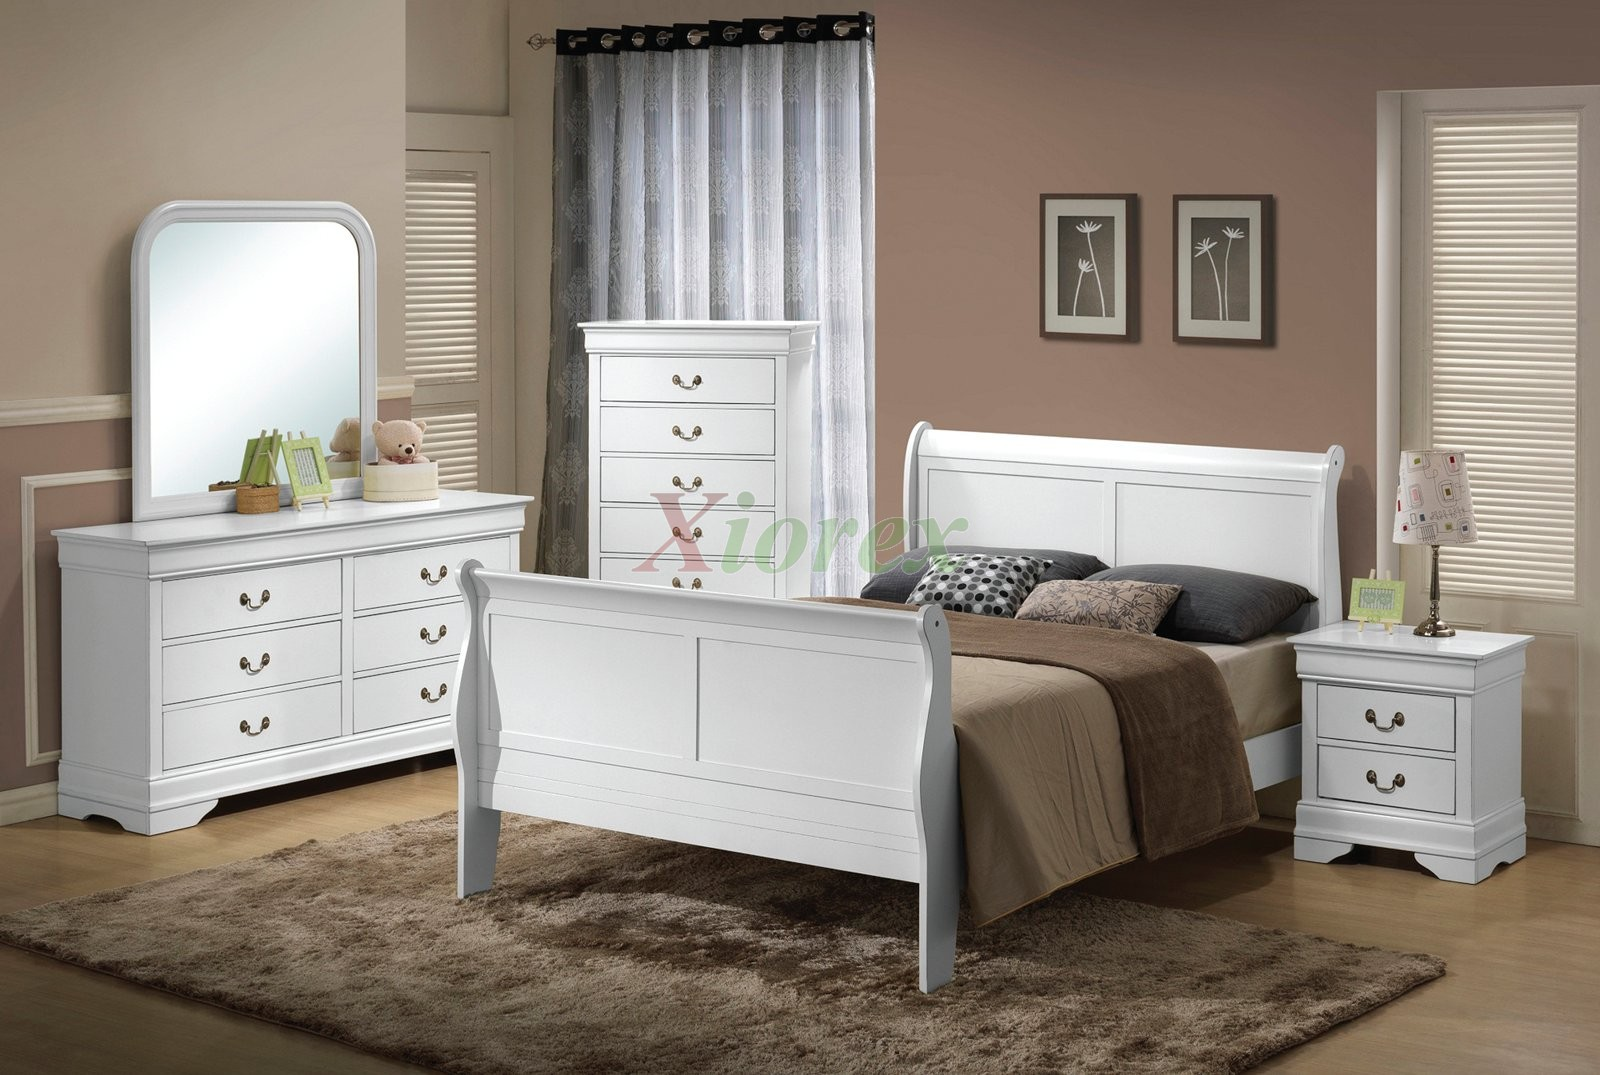 Semi gloss sleigh like bedroom furniture set 170 in cherry for White bedroom furniture set